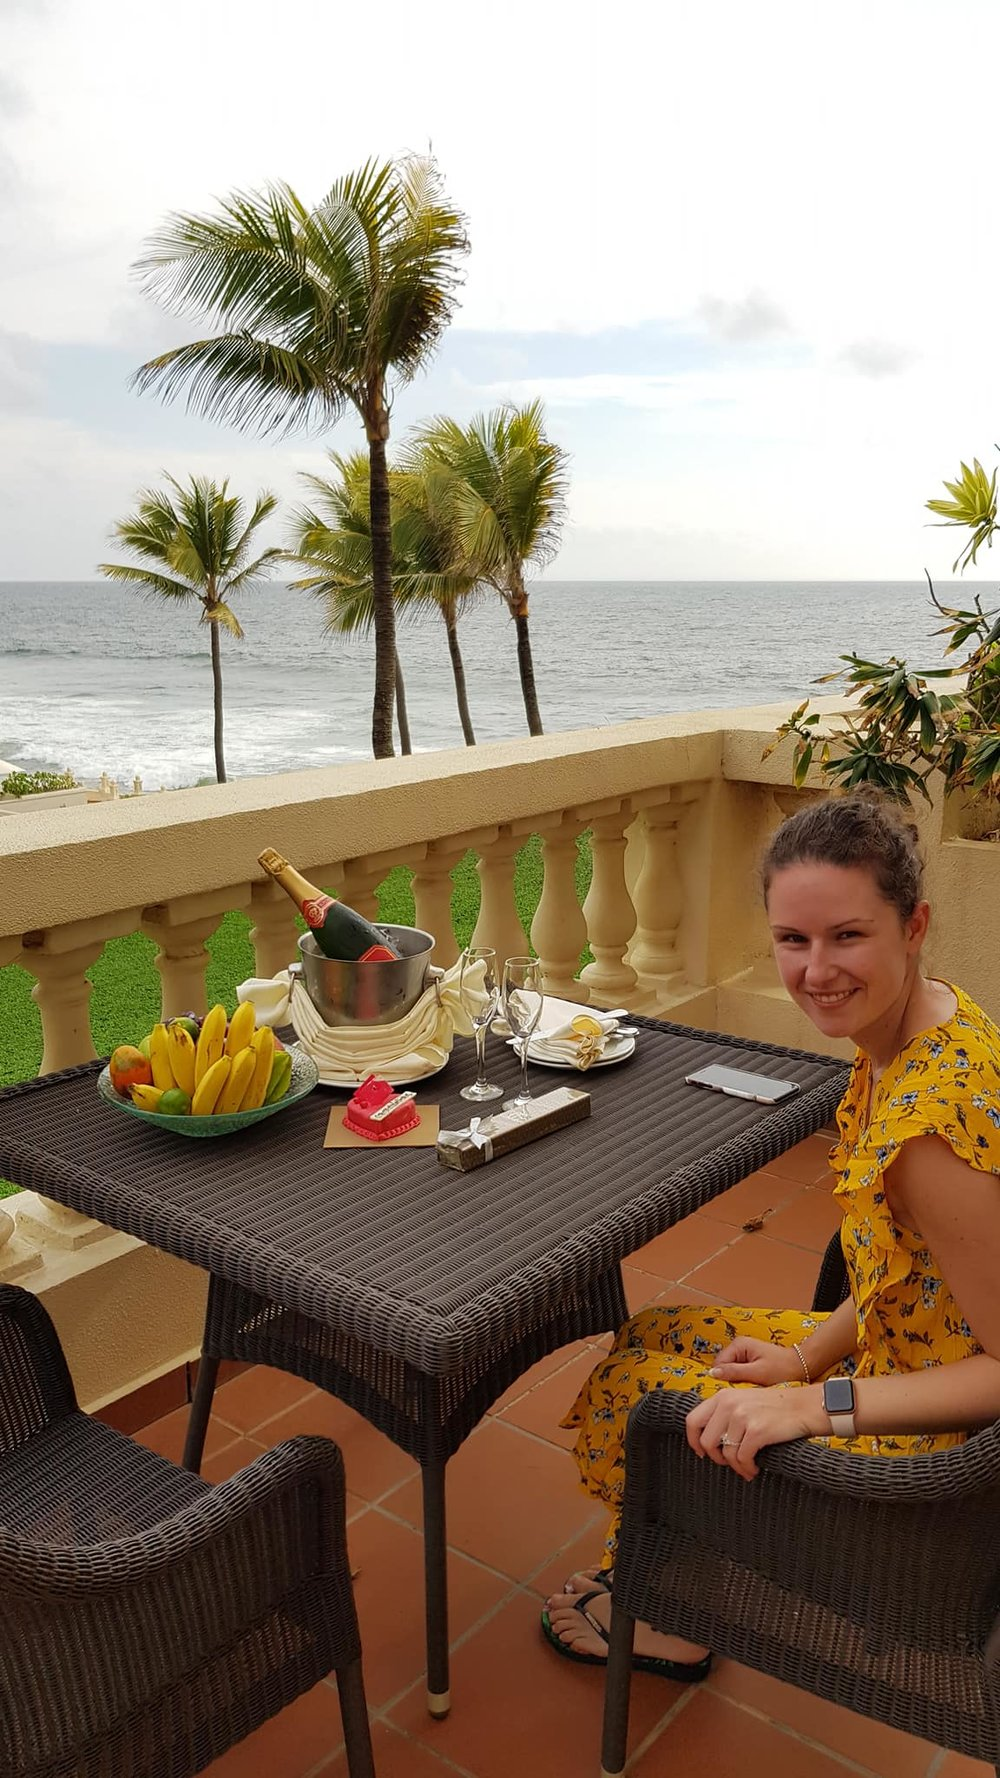 invite-to-paradise-sri-lanka-maldives-holiday-honeymoon-specialists-customer-guest-feedback-zane-lisa-butcher-colombo-galle-face-hotel-room-view.jpg